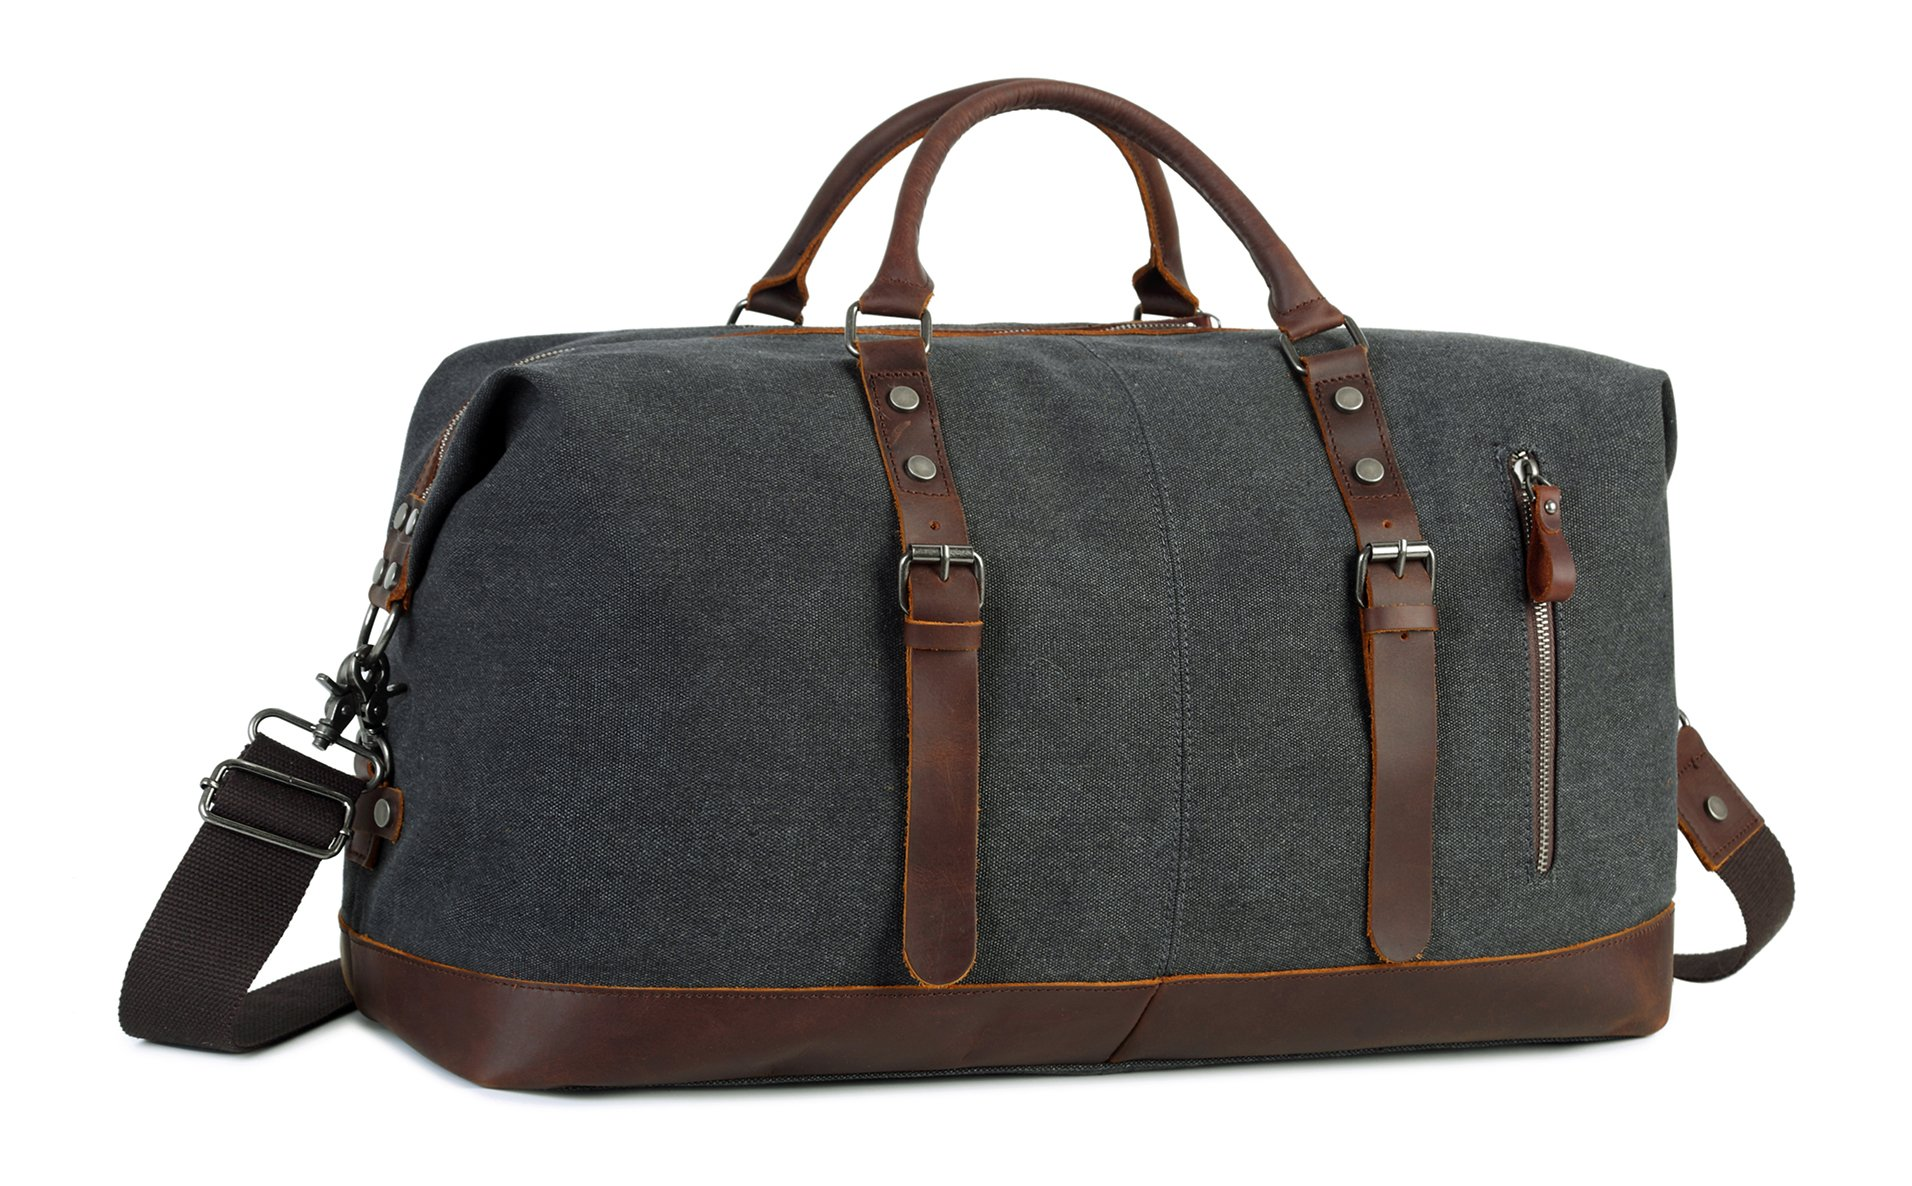 Oversized Travel Duffel Bag Canvas Leather Trim Overnight Bag Weekend Bag for Men and Women